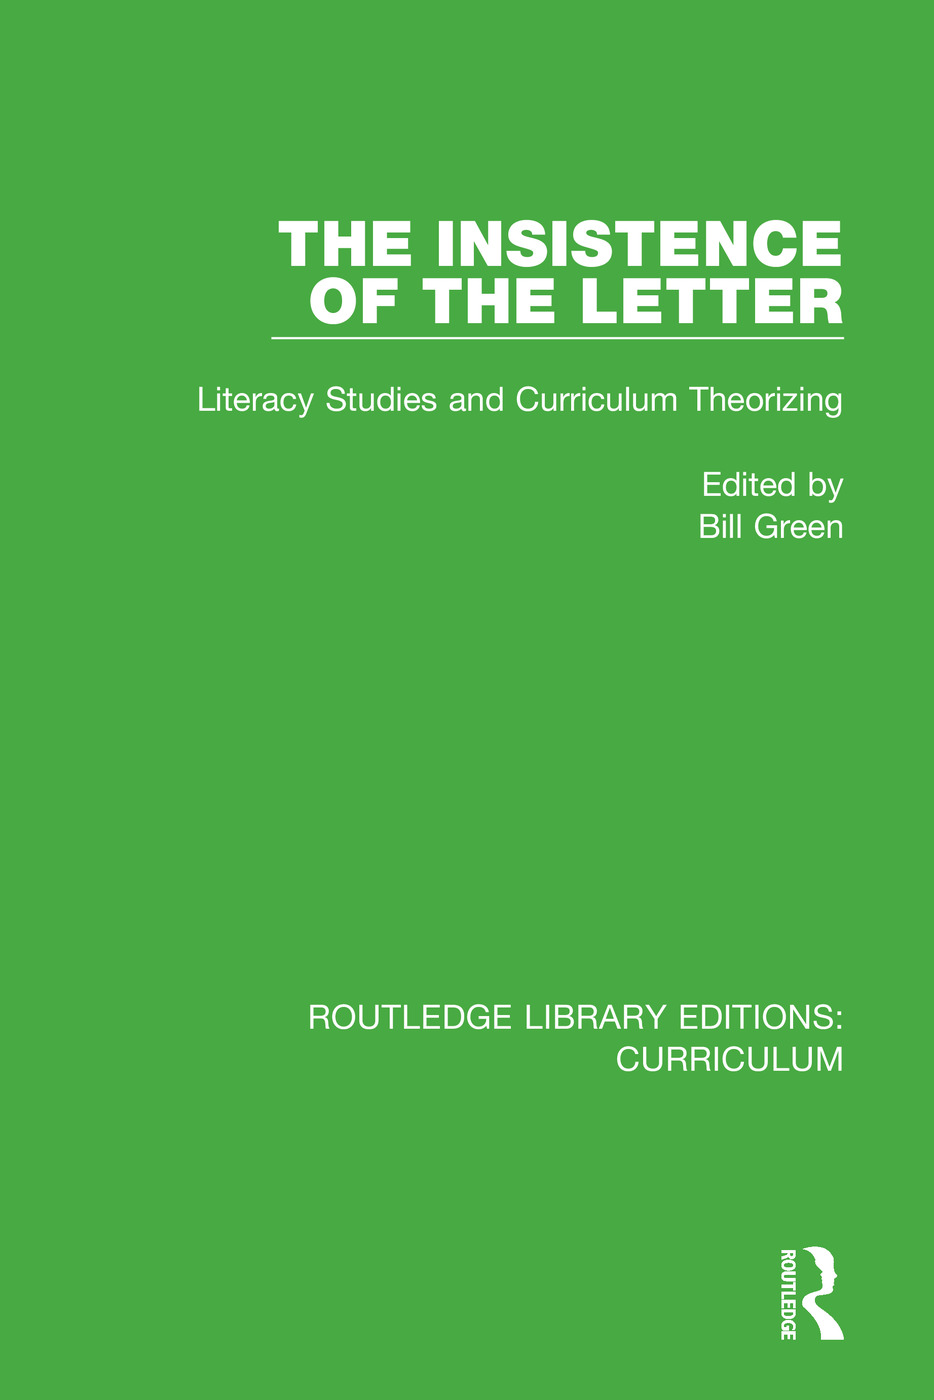 The Insistence of the Letter: Literacy Studies and Curriculum Theorizing book cover